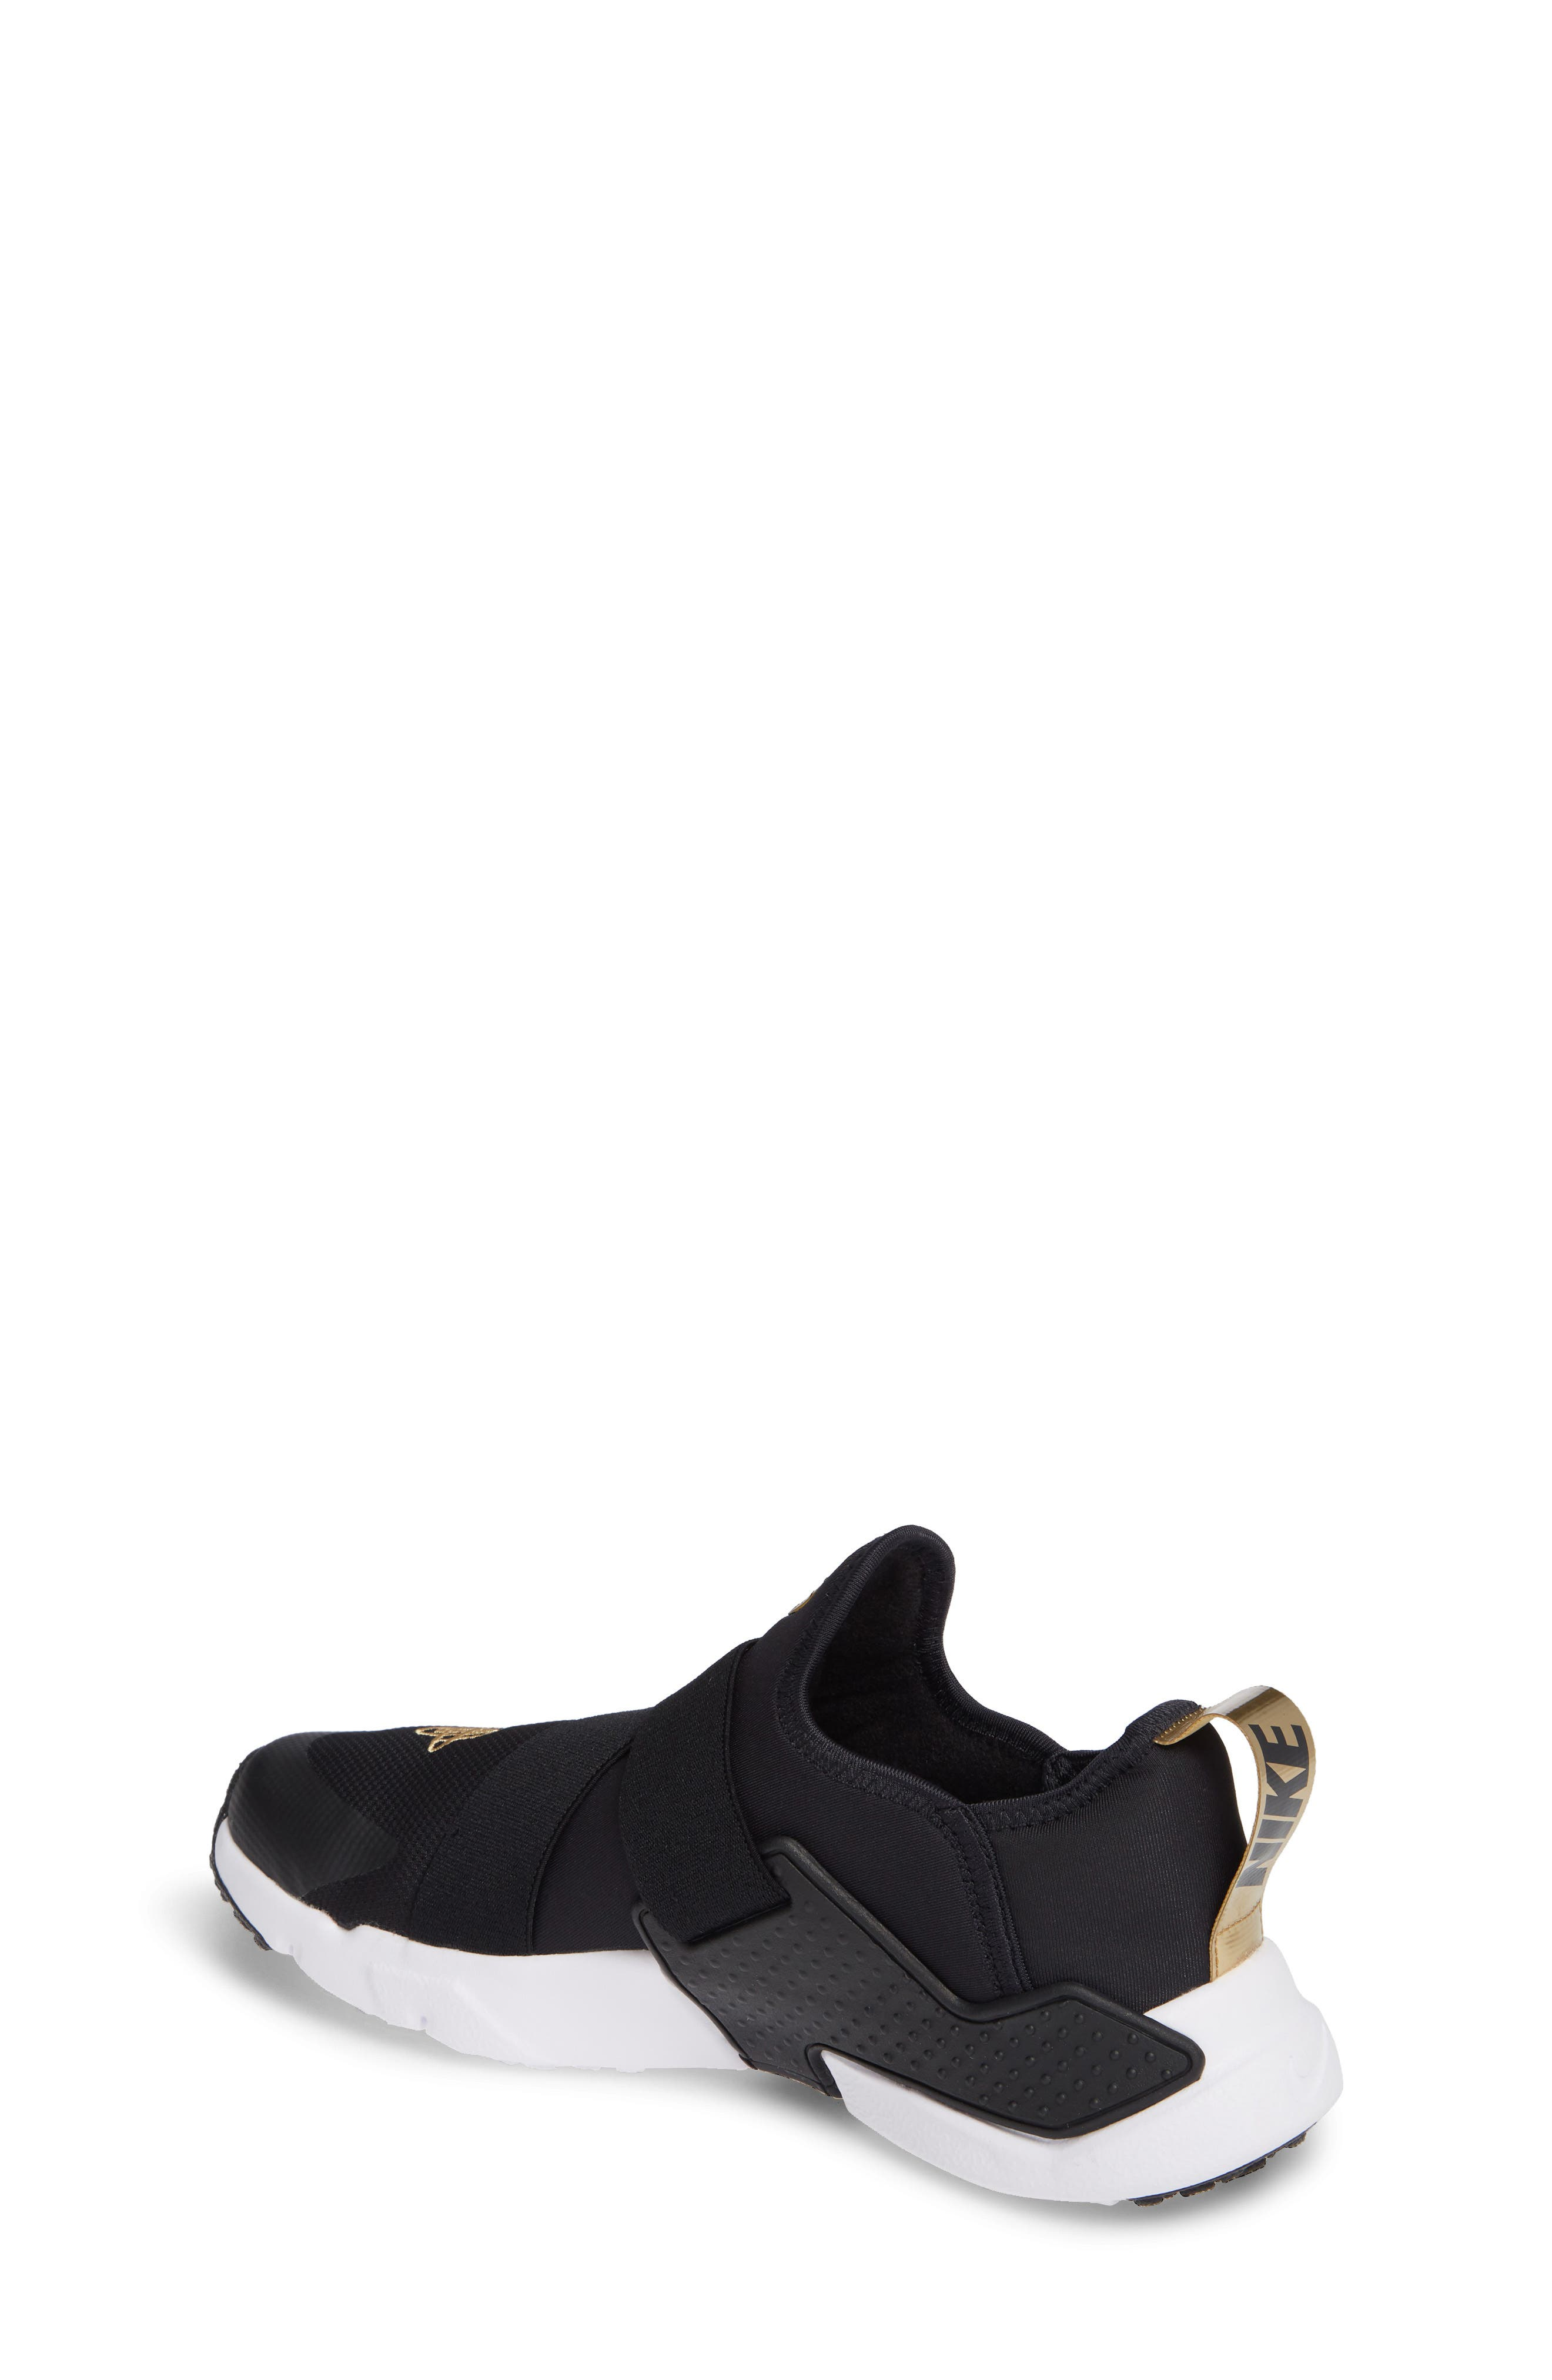 Huarache Extreme Sneaker,                             Alternate thumbnail 2, color,                             BLACK/ METALLIC GOLD/ WHITE